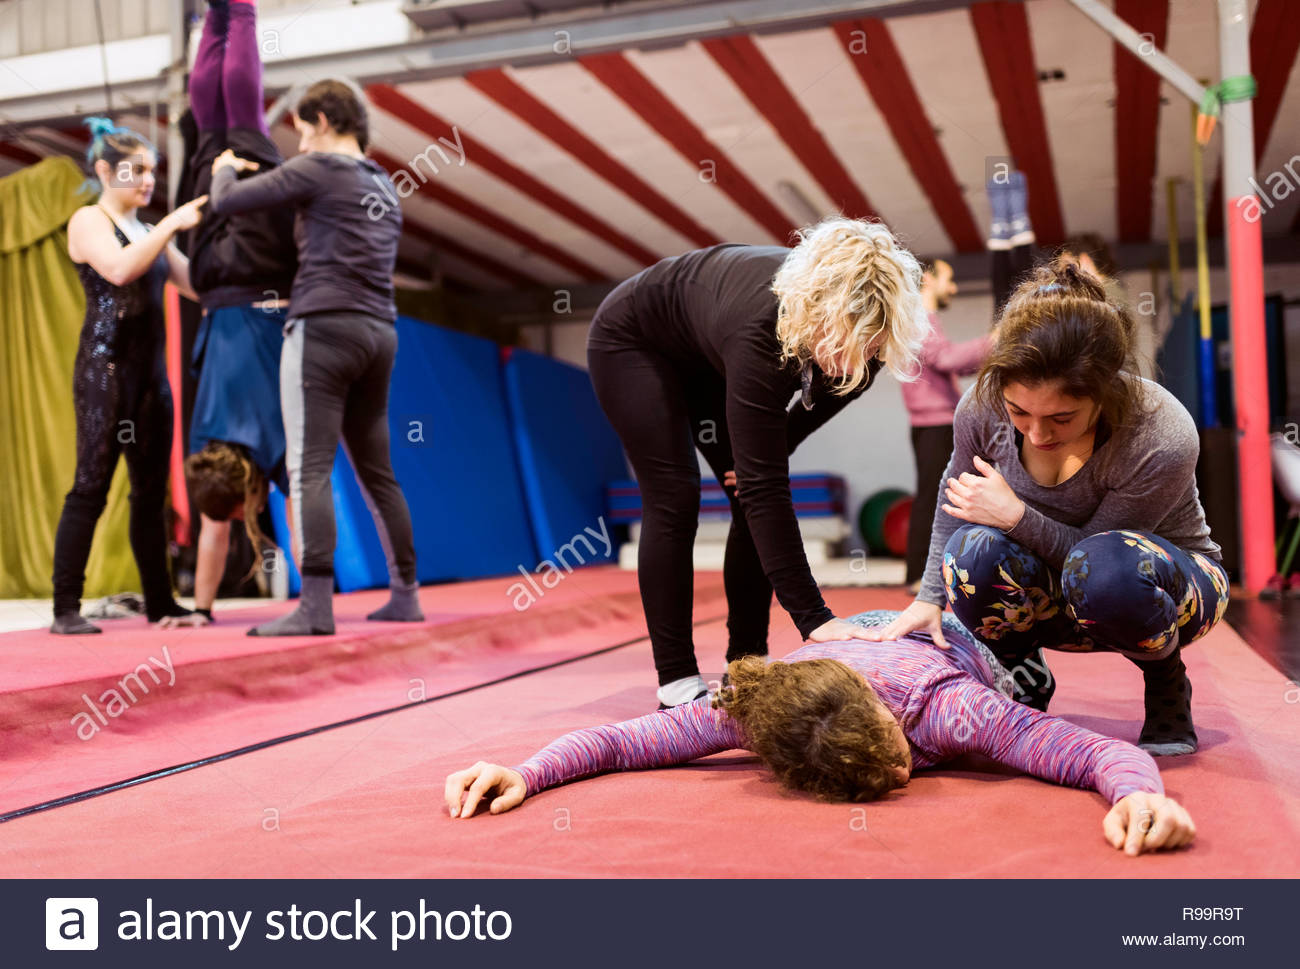 Female acrobats pressing on back of lying on floor woman with equilibrists training behind scenes on blurred background - Stock Image